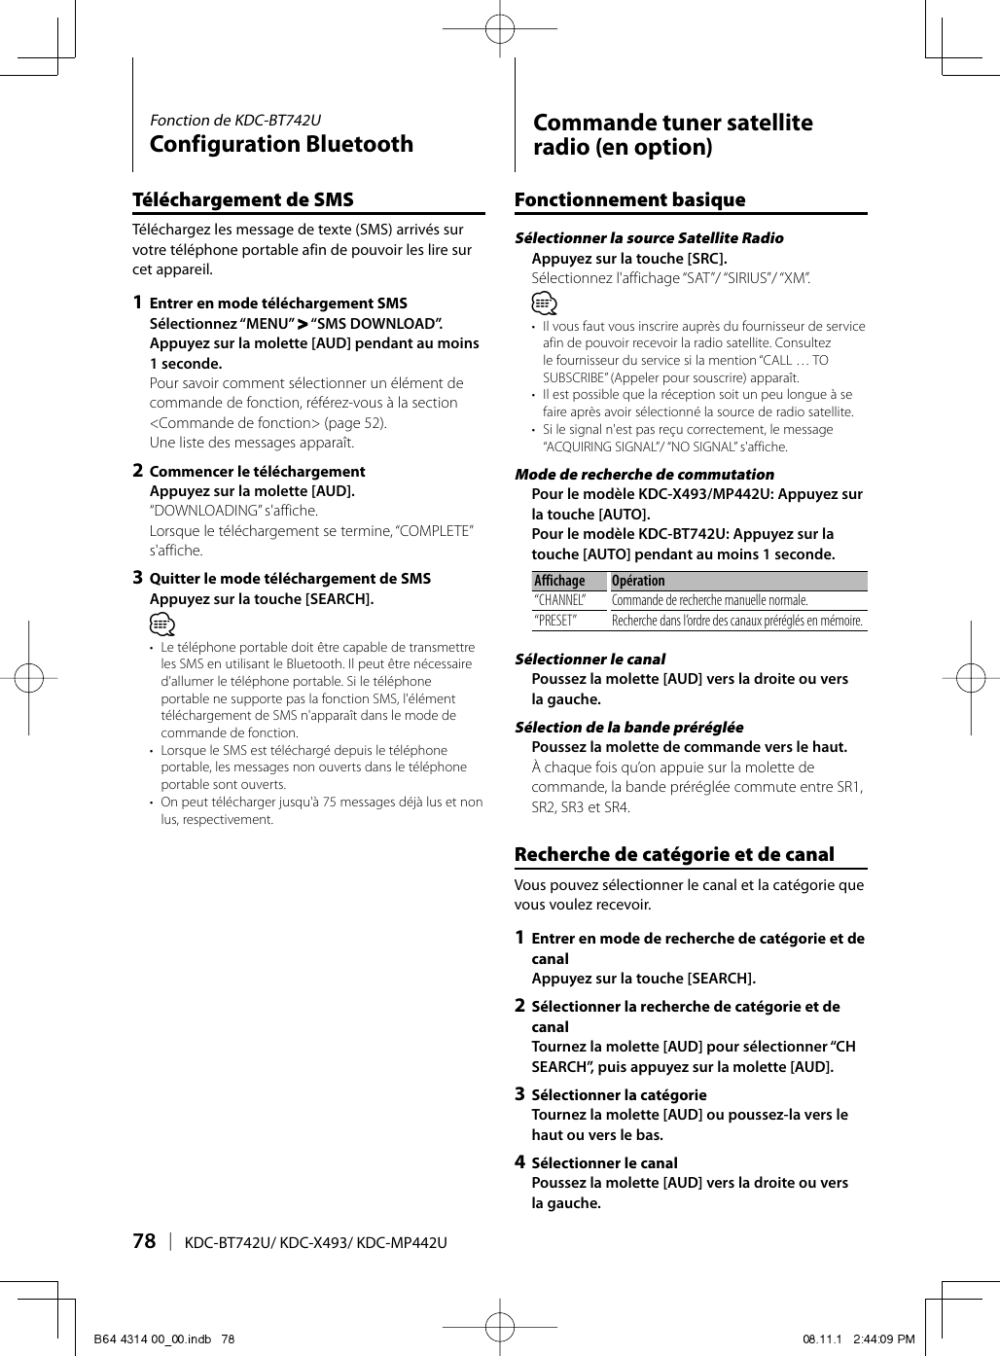 medium resolution of kenwoodexcelonkdcx493usersmanual263232 373101021 user guide page 78 png